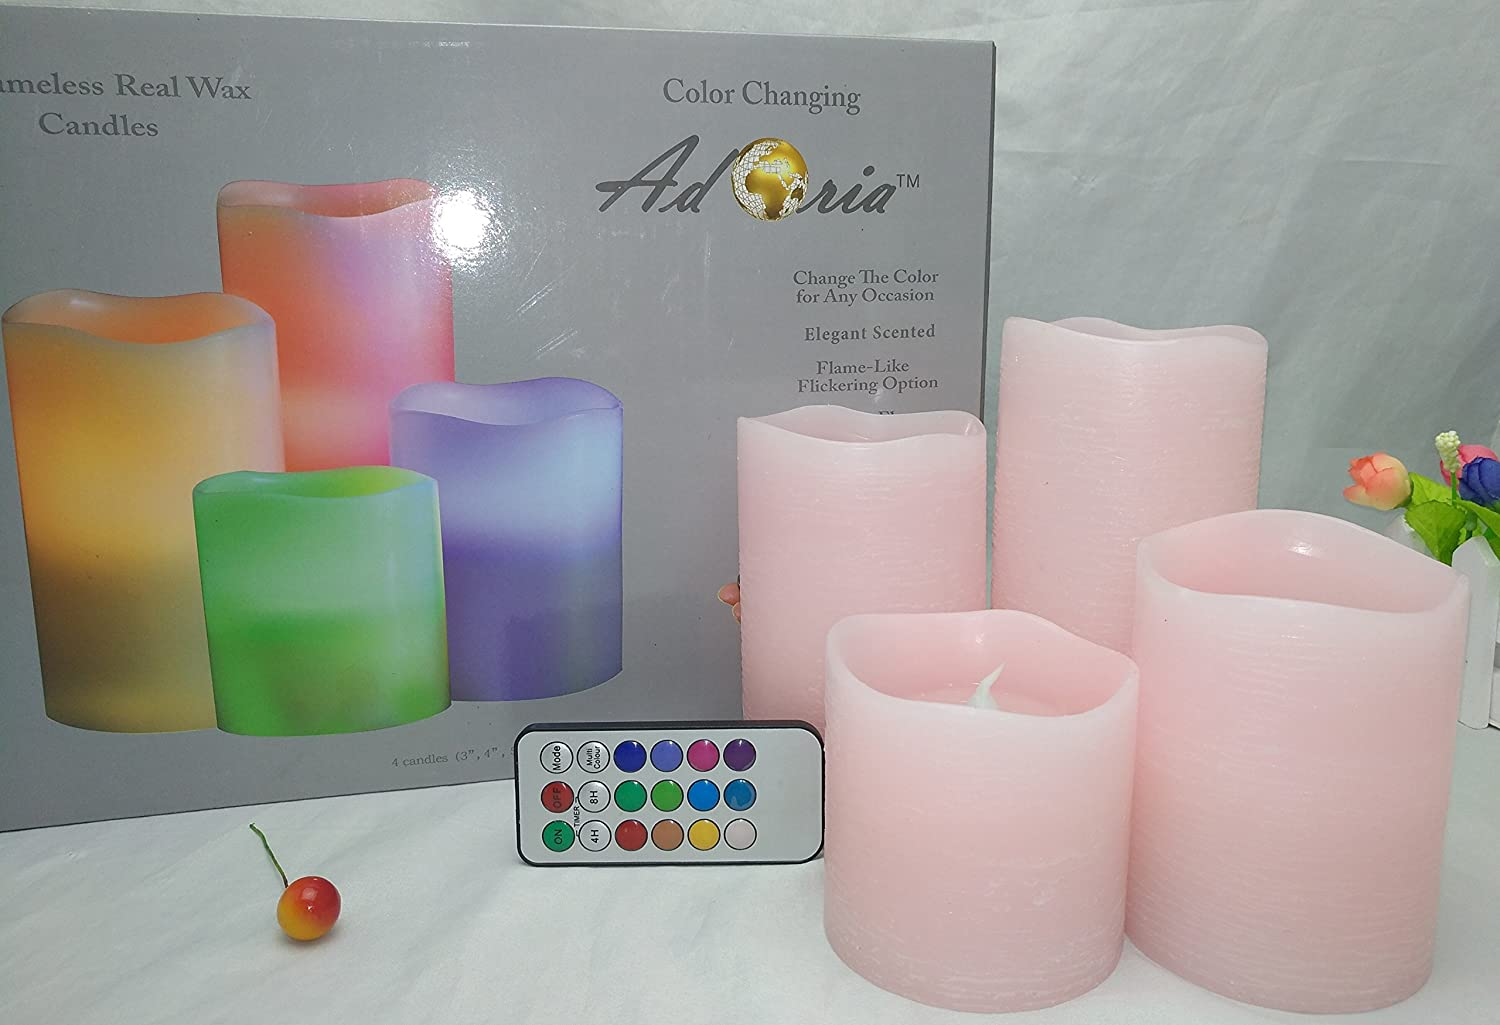 tall 3,4,5,6inch tall 3 4 5 179C Adoria Pink Led Candles-Auto Cycle 24-hour Timer Multi Function Remote control Real Wax Rustic-Rose Scented Set of 4